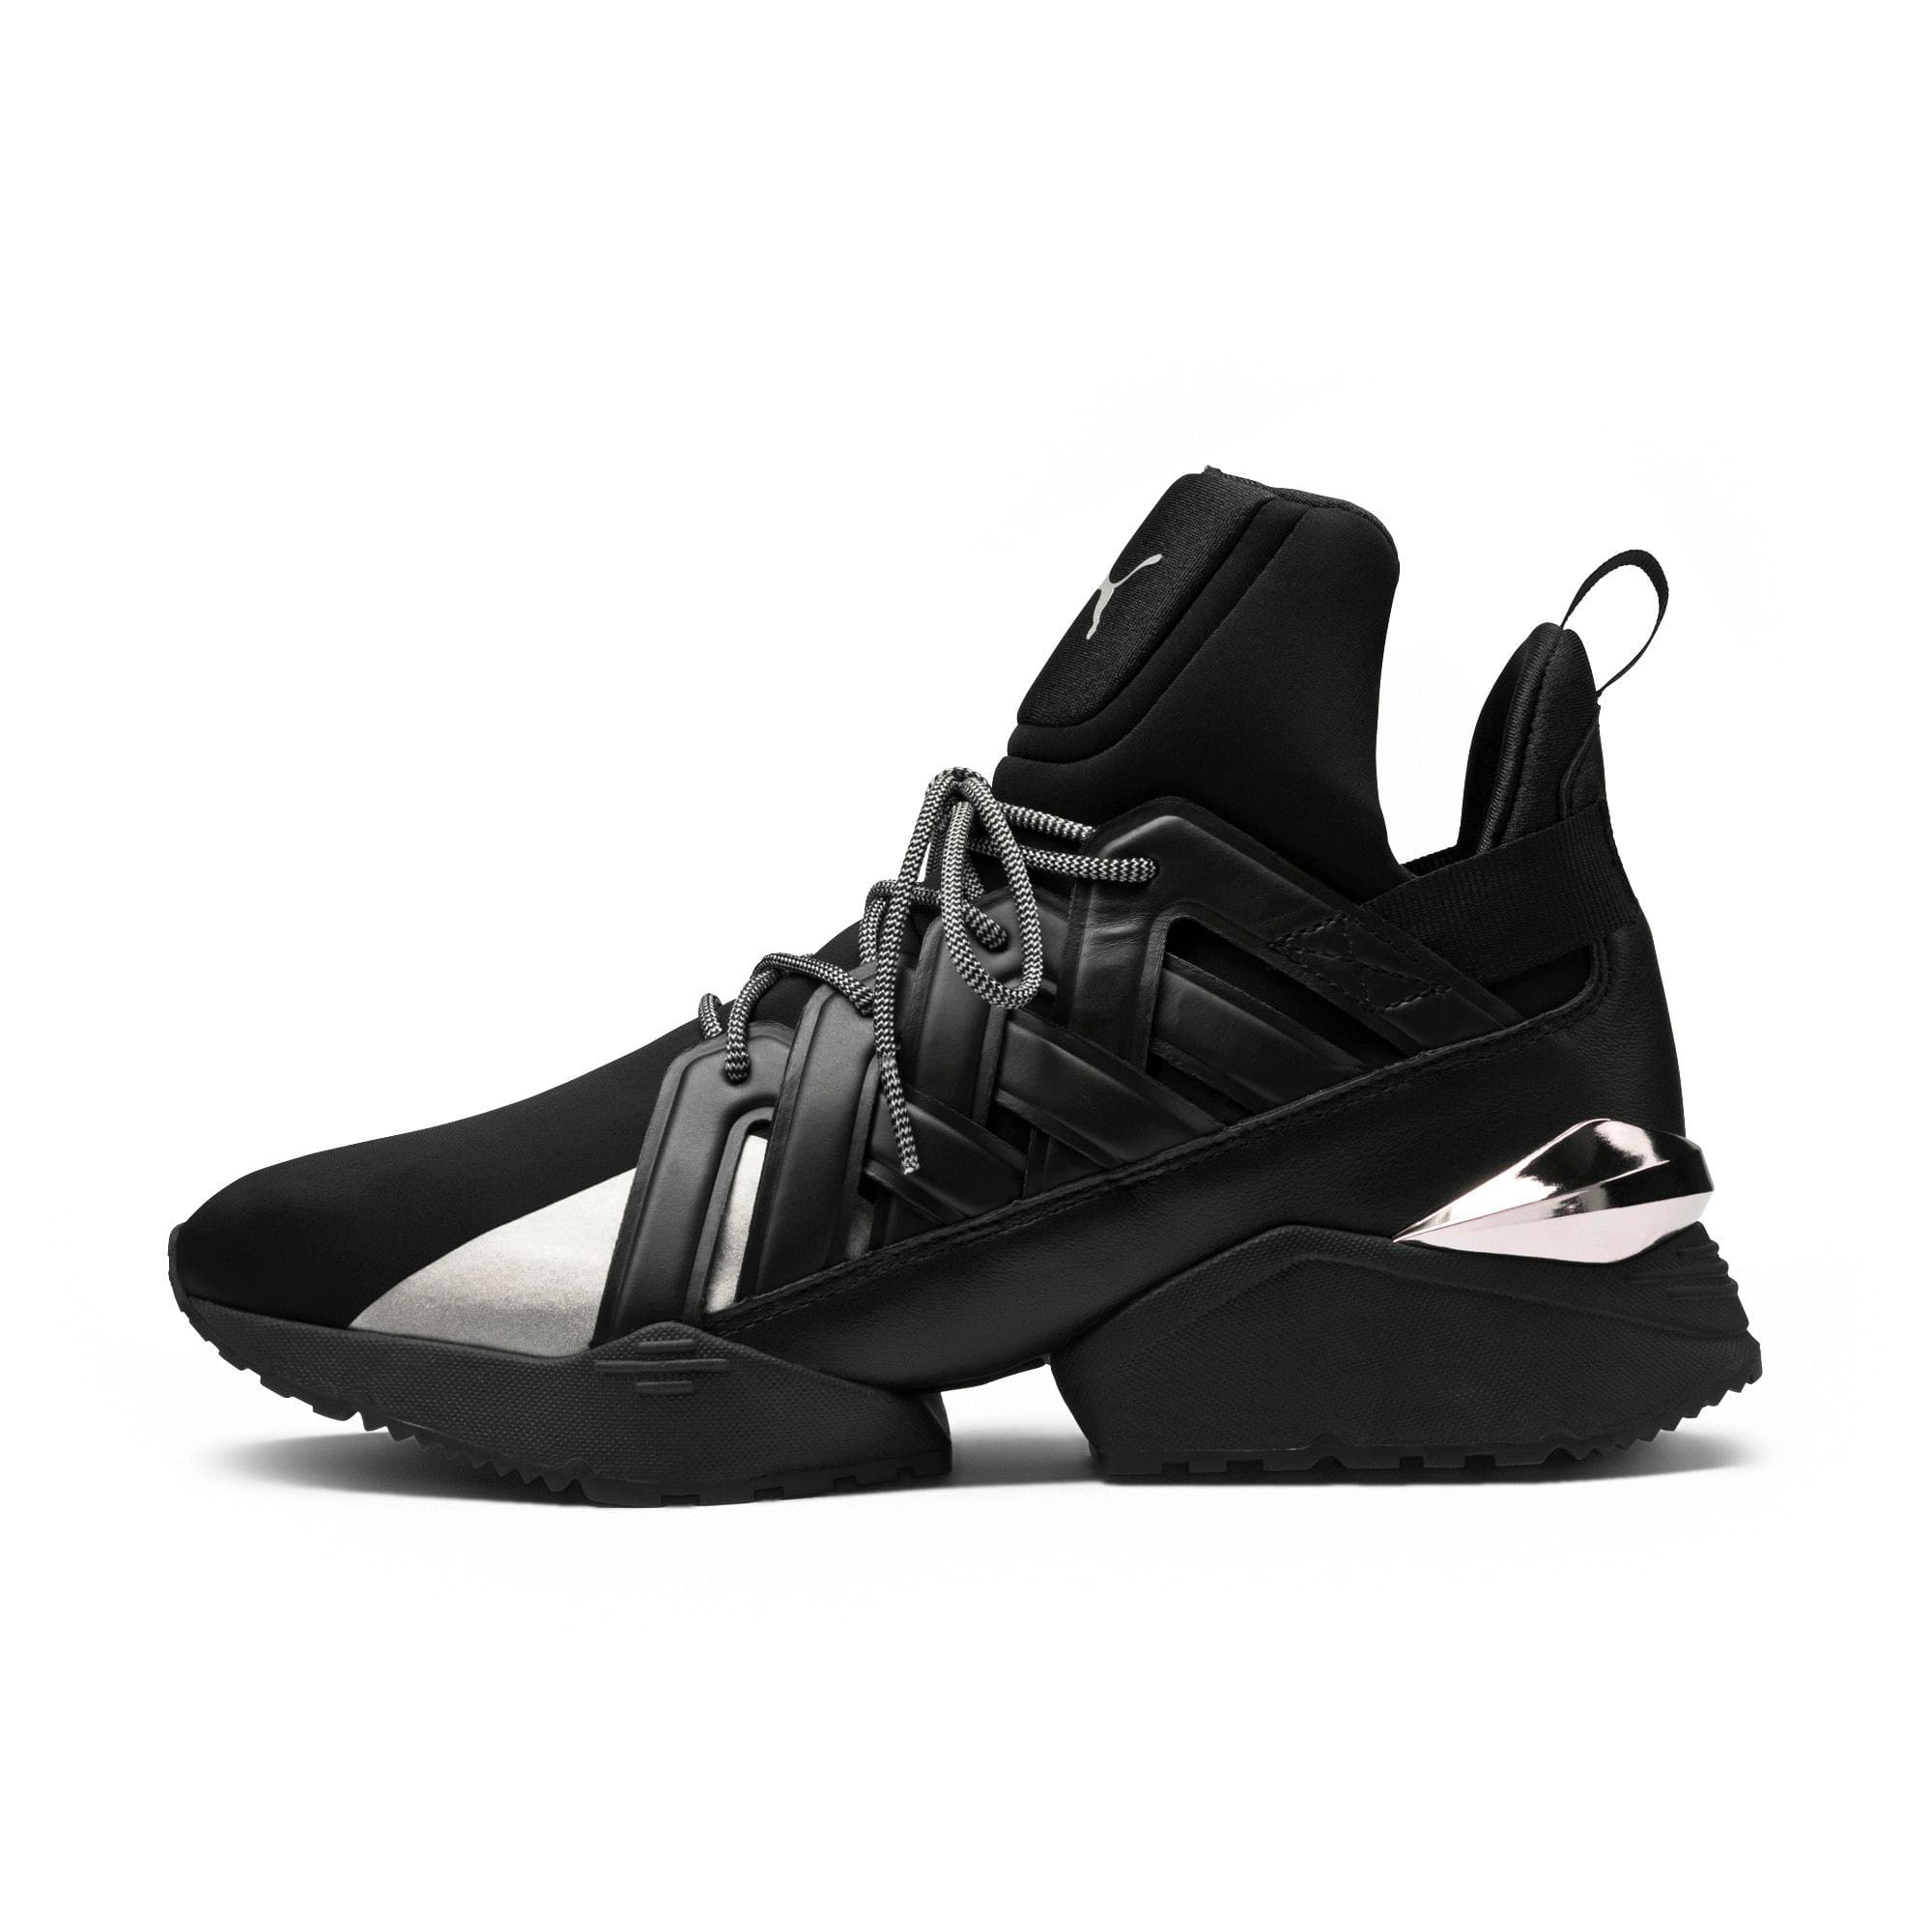 PUMA Womens Muse Elevated Shoes